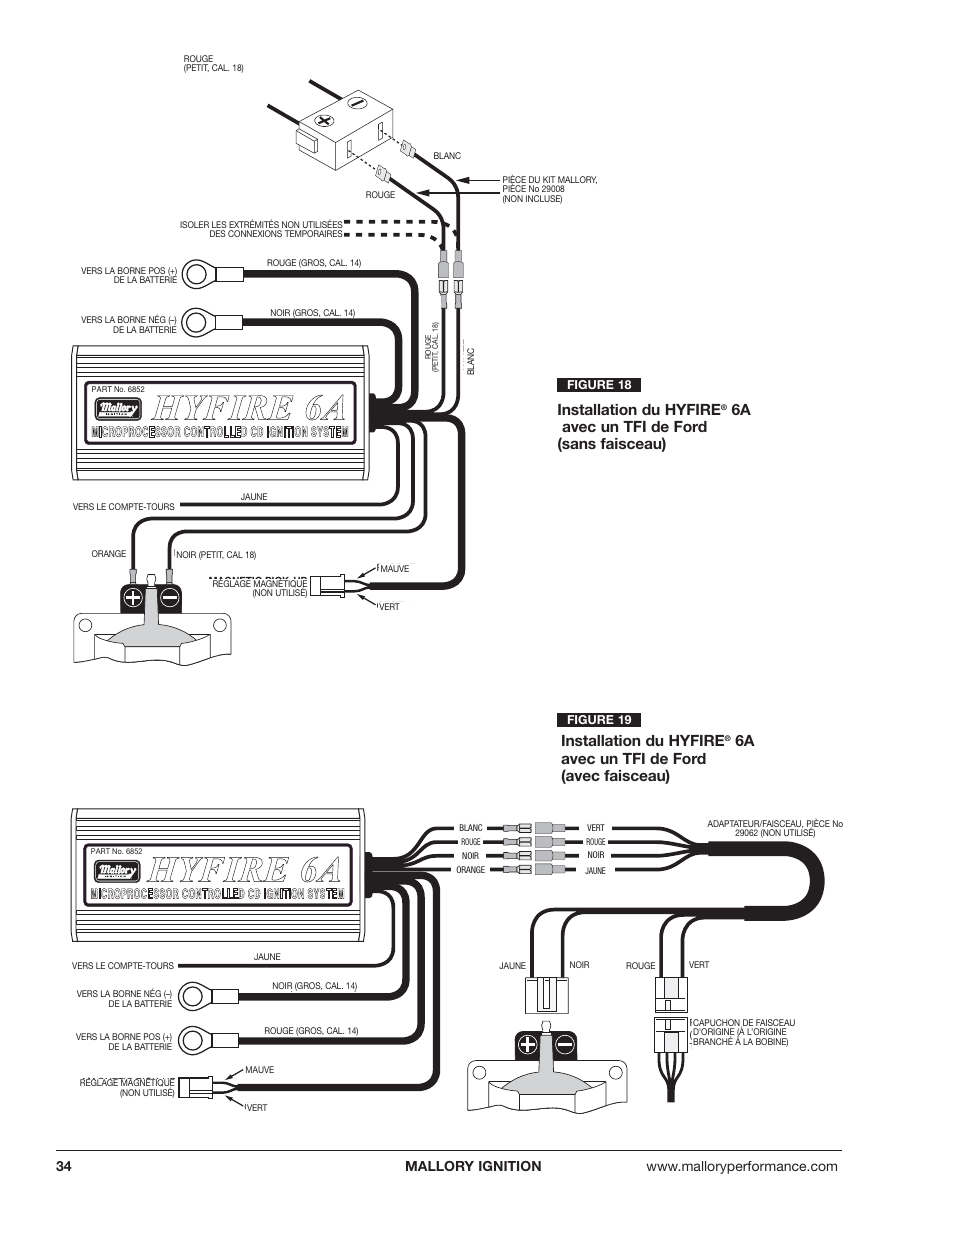 Mallory Hyfire Wiring Diagram 685 Midoriva For Distributor Free Download Rostra 6a Cj7 Msd